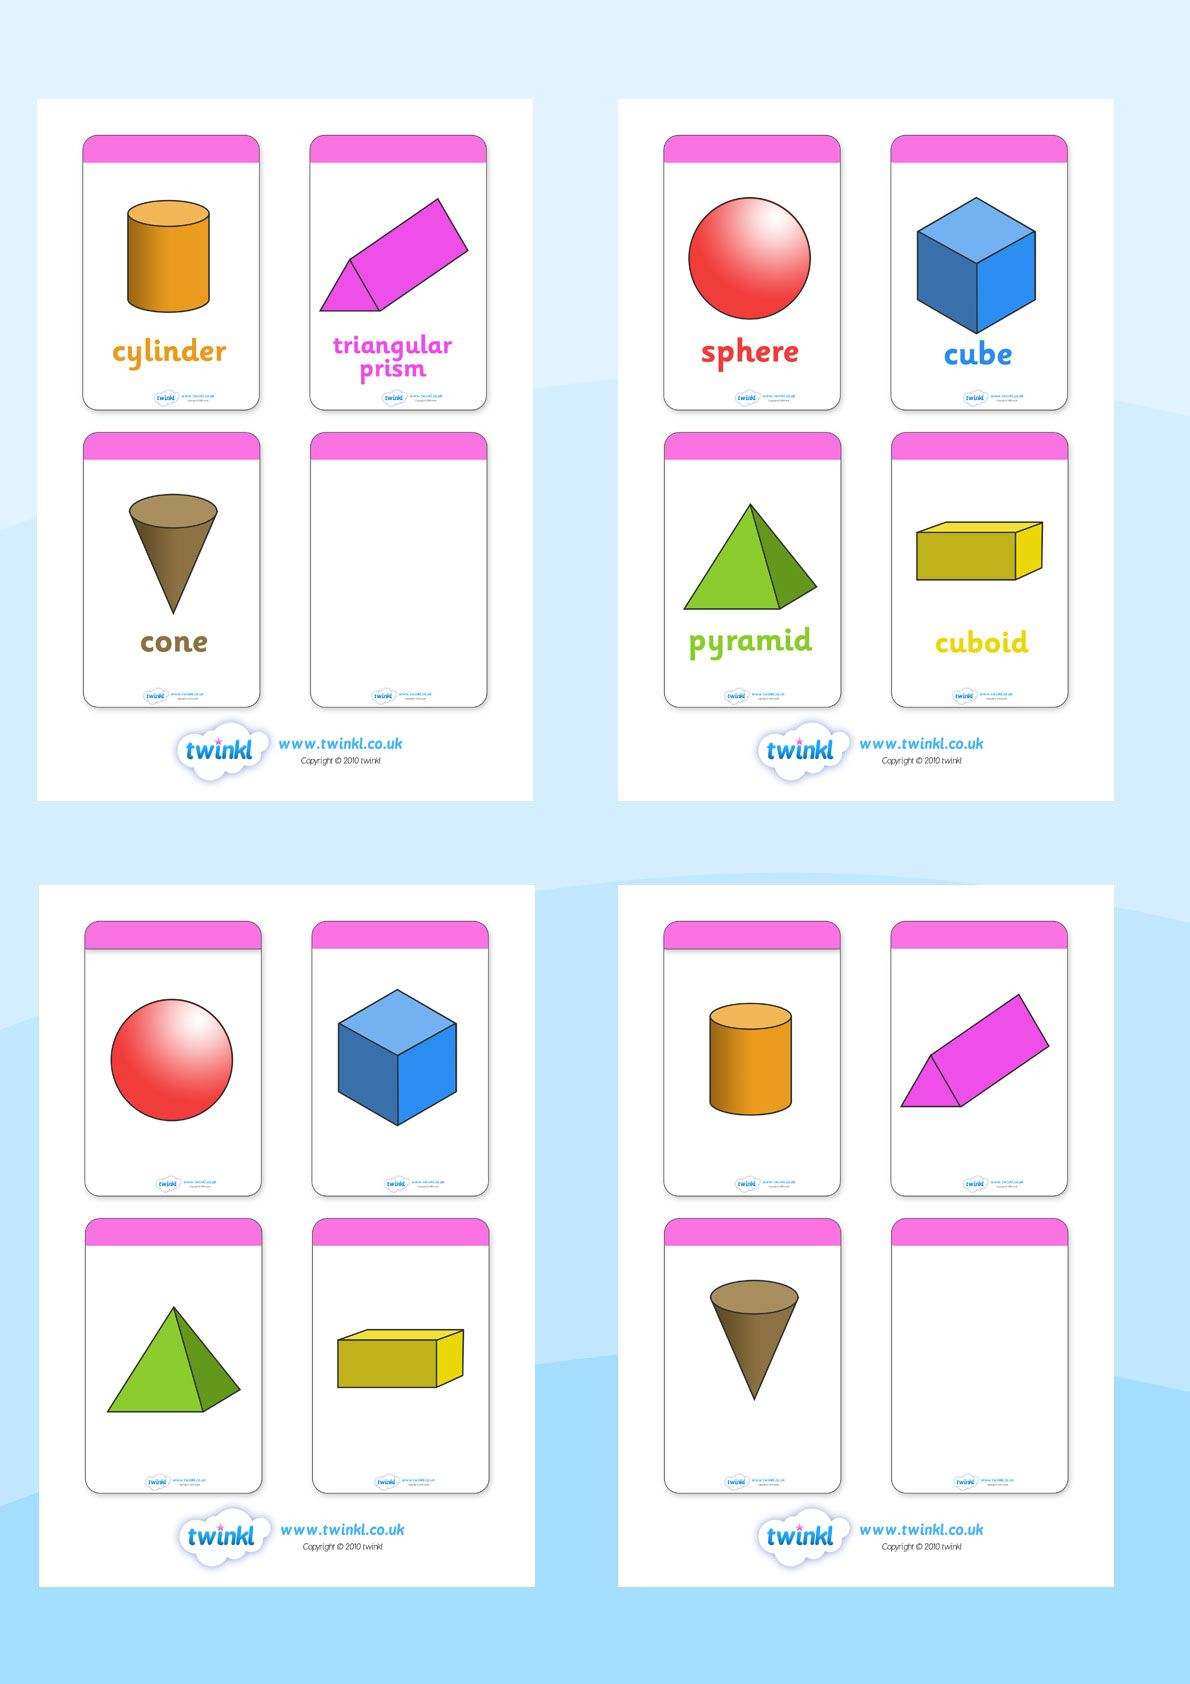 Twinkl Resources 3d Shape Flashcards Printable Resources For Primary Eyfs Ks1 And Sen Thousands Of Classroo 3d Shape Shapes Flashcards Printable Flash Cards